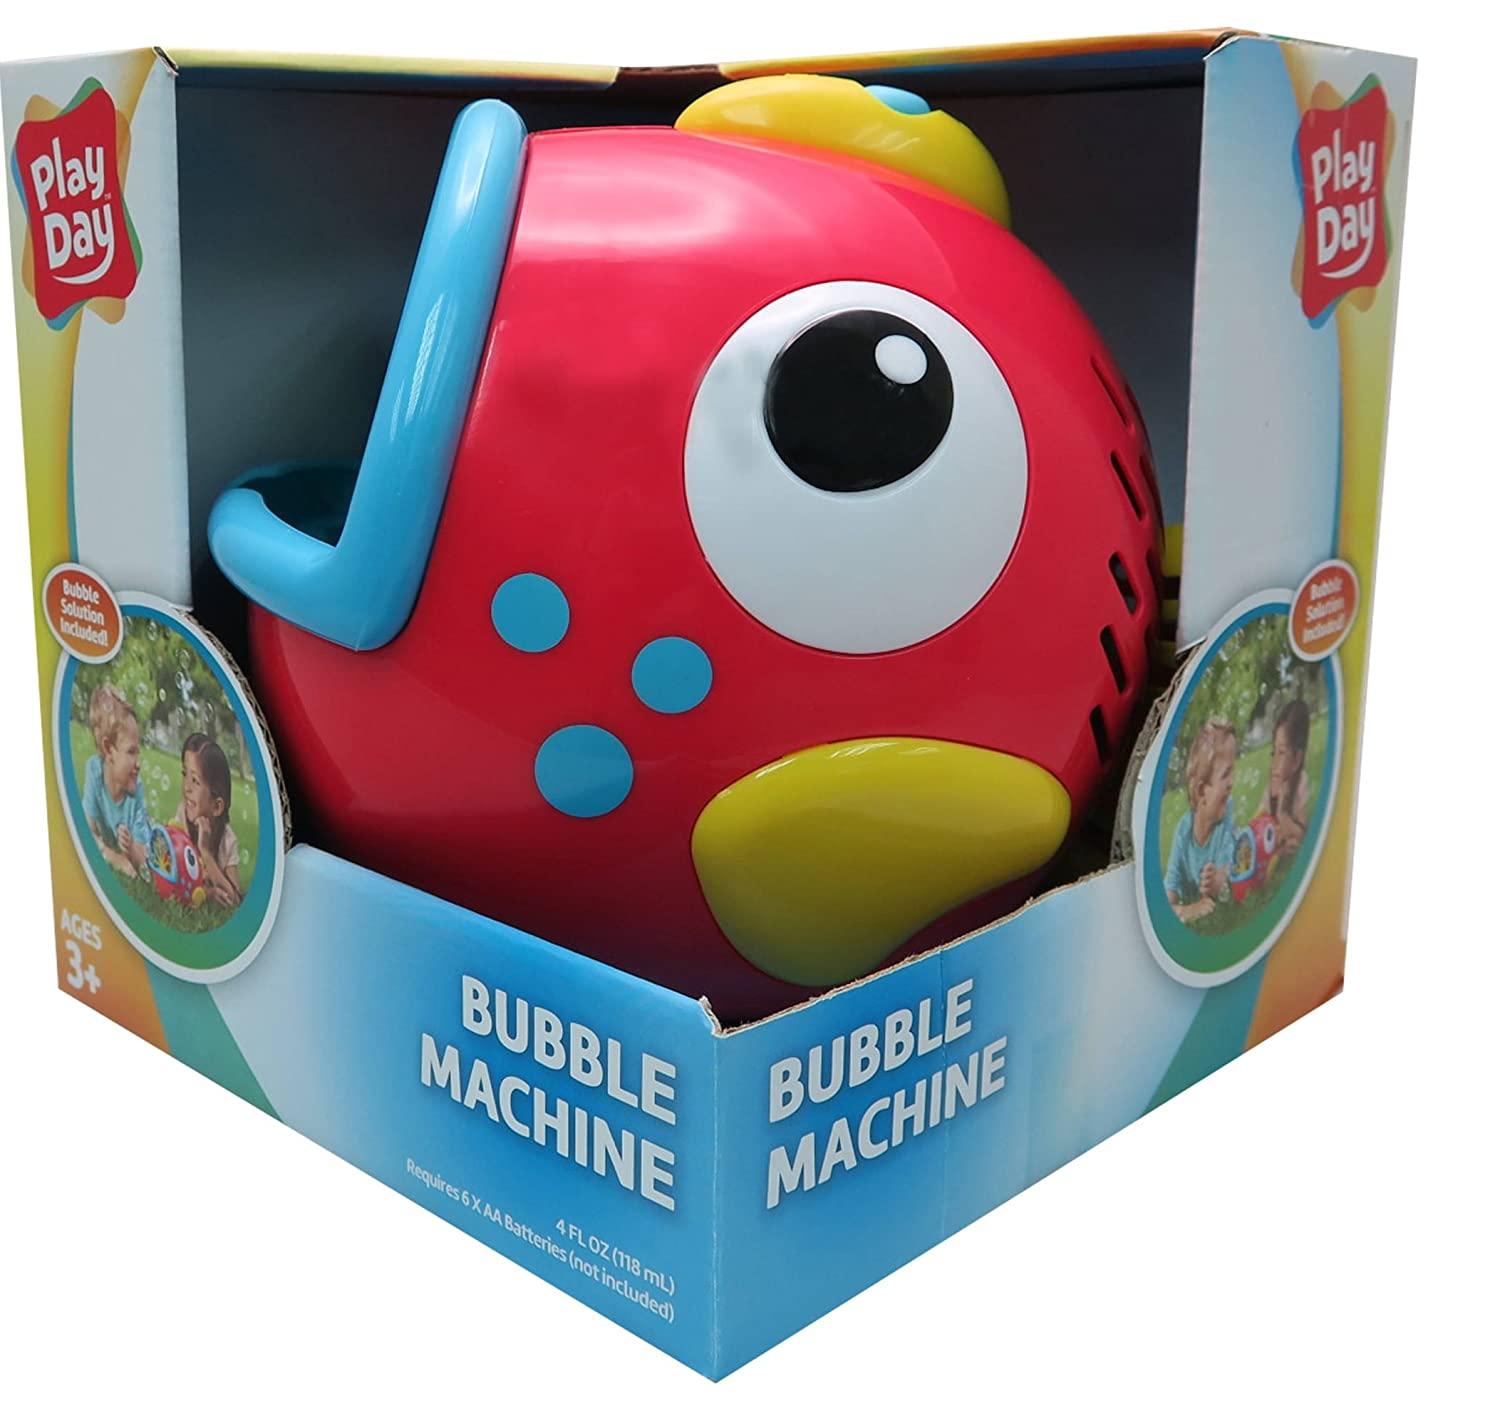 Amazon Play Day Red Fish Bubble Blowing Machine Toy Toys & Games